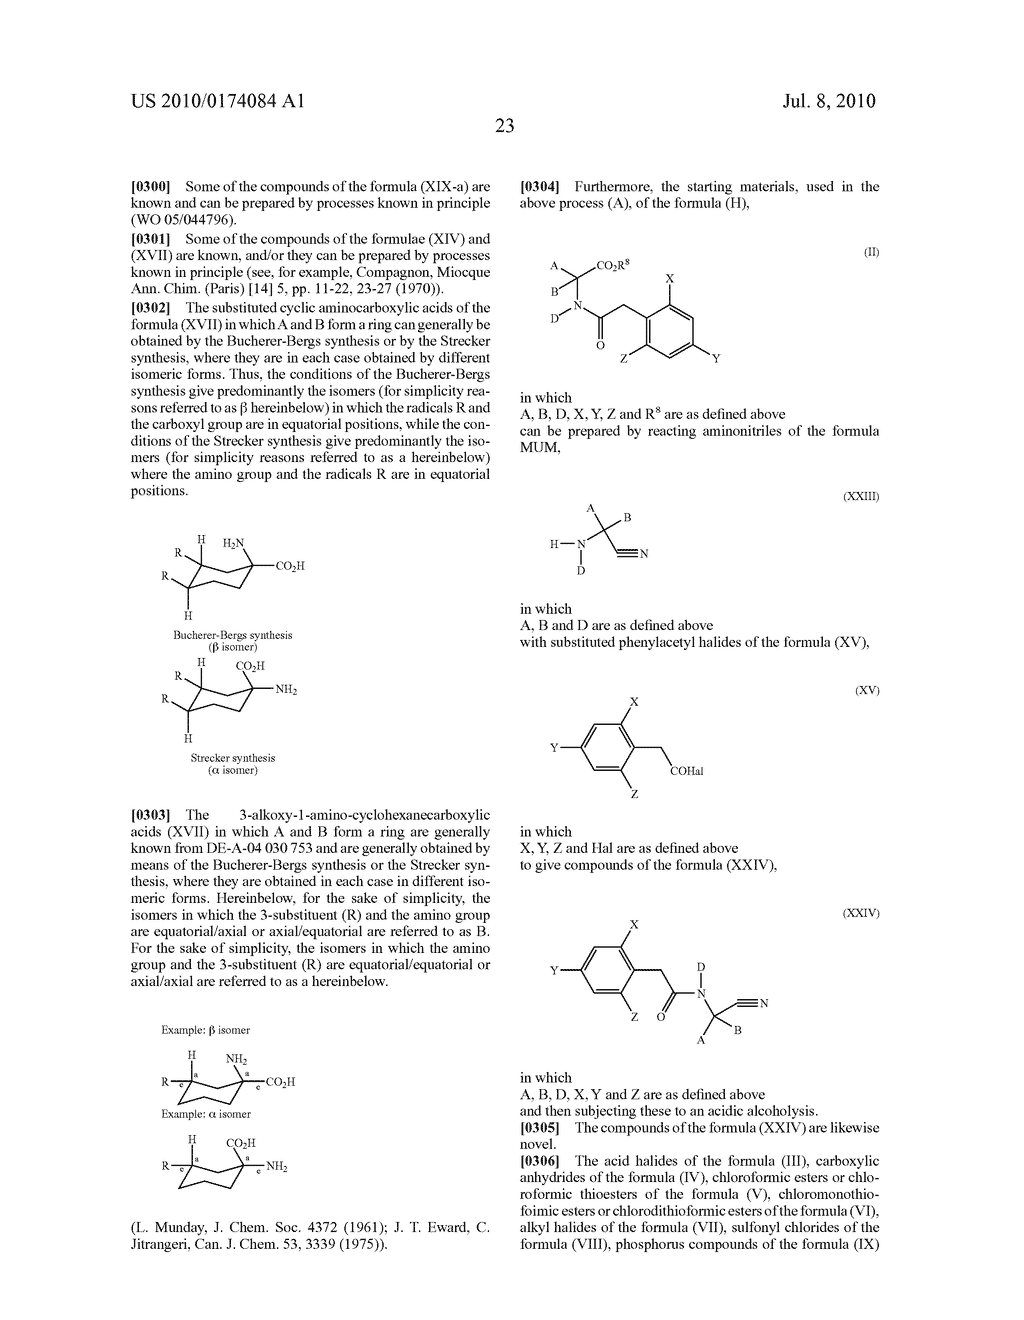 2-Alkoxy-6-alkyl-phenyl-substituted Spirocyclic Tetramic Acid Derivatives - diagram, schematic, and image 24